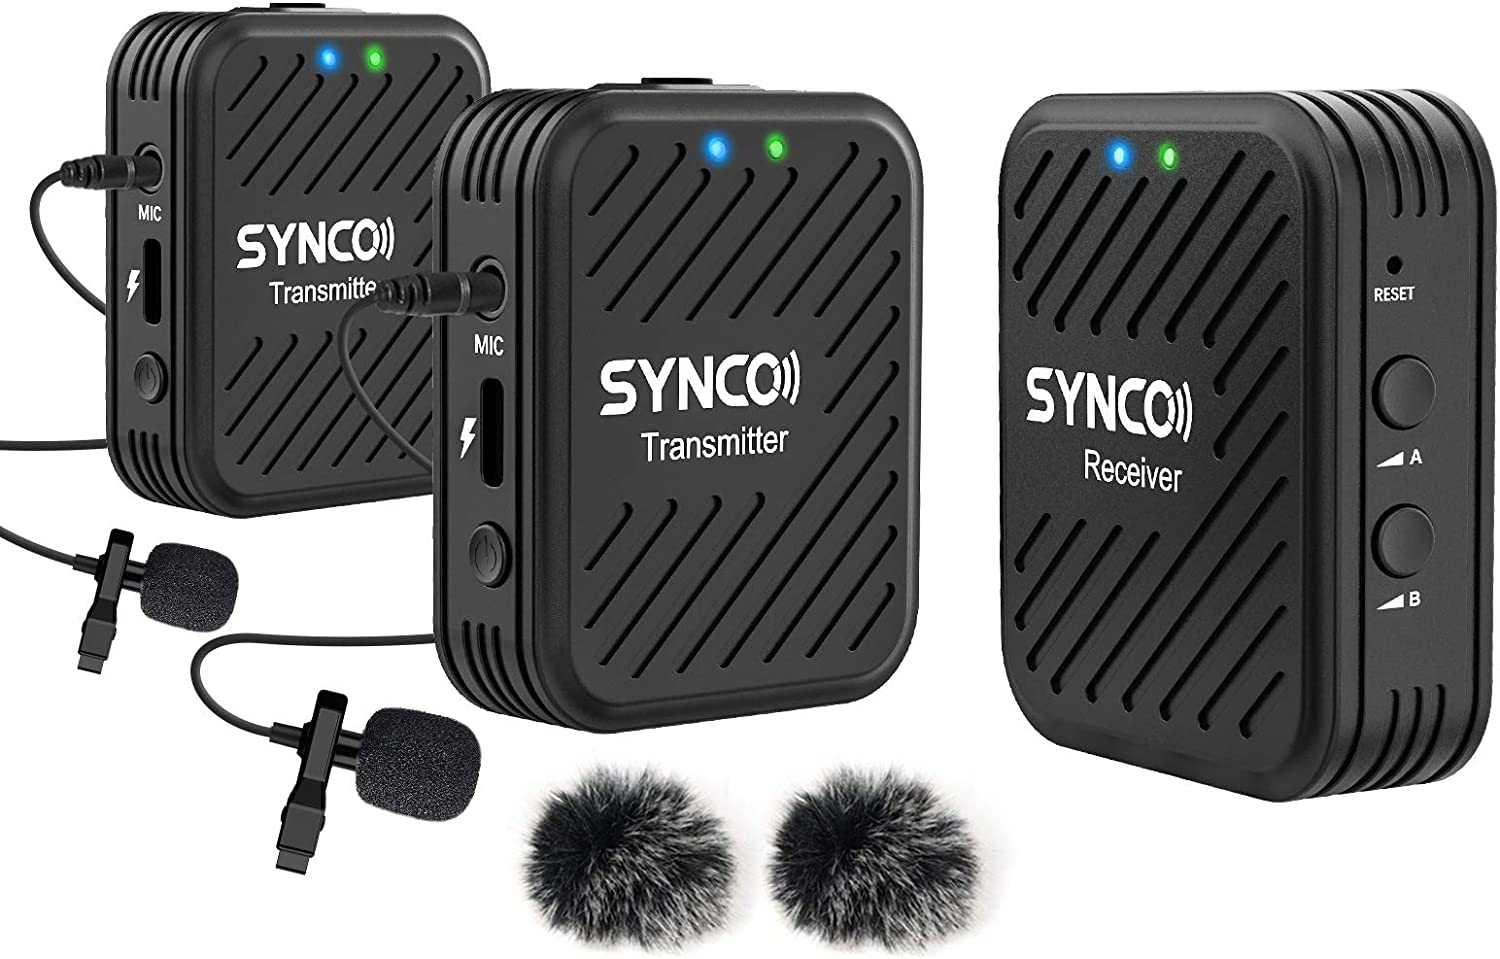 Laptops,DSLRs iPhone 200 ft Audio Range 2.4GHz Dual Wireless Lavalier Microphone System Compatible with PC Computers Movo WMX-1-DUO Computer USB Bundle Great for Teaching Tutorials Smartphones